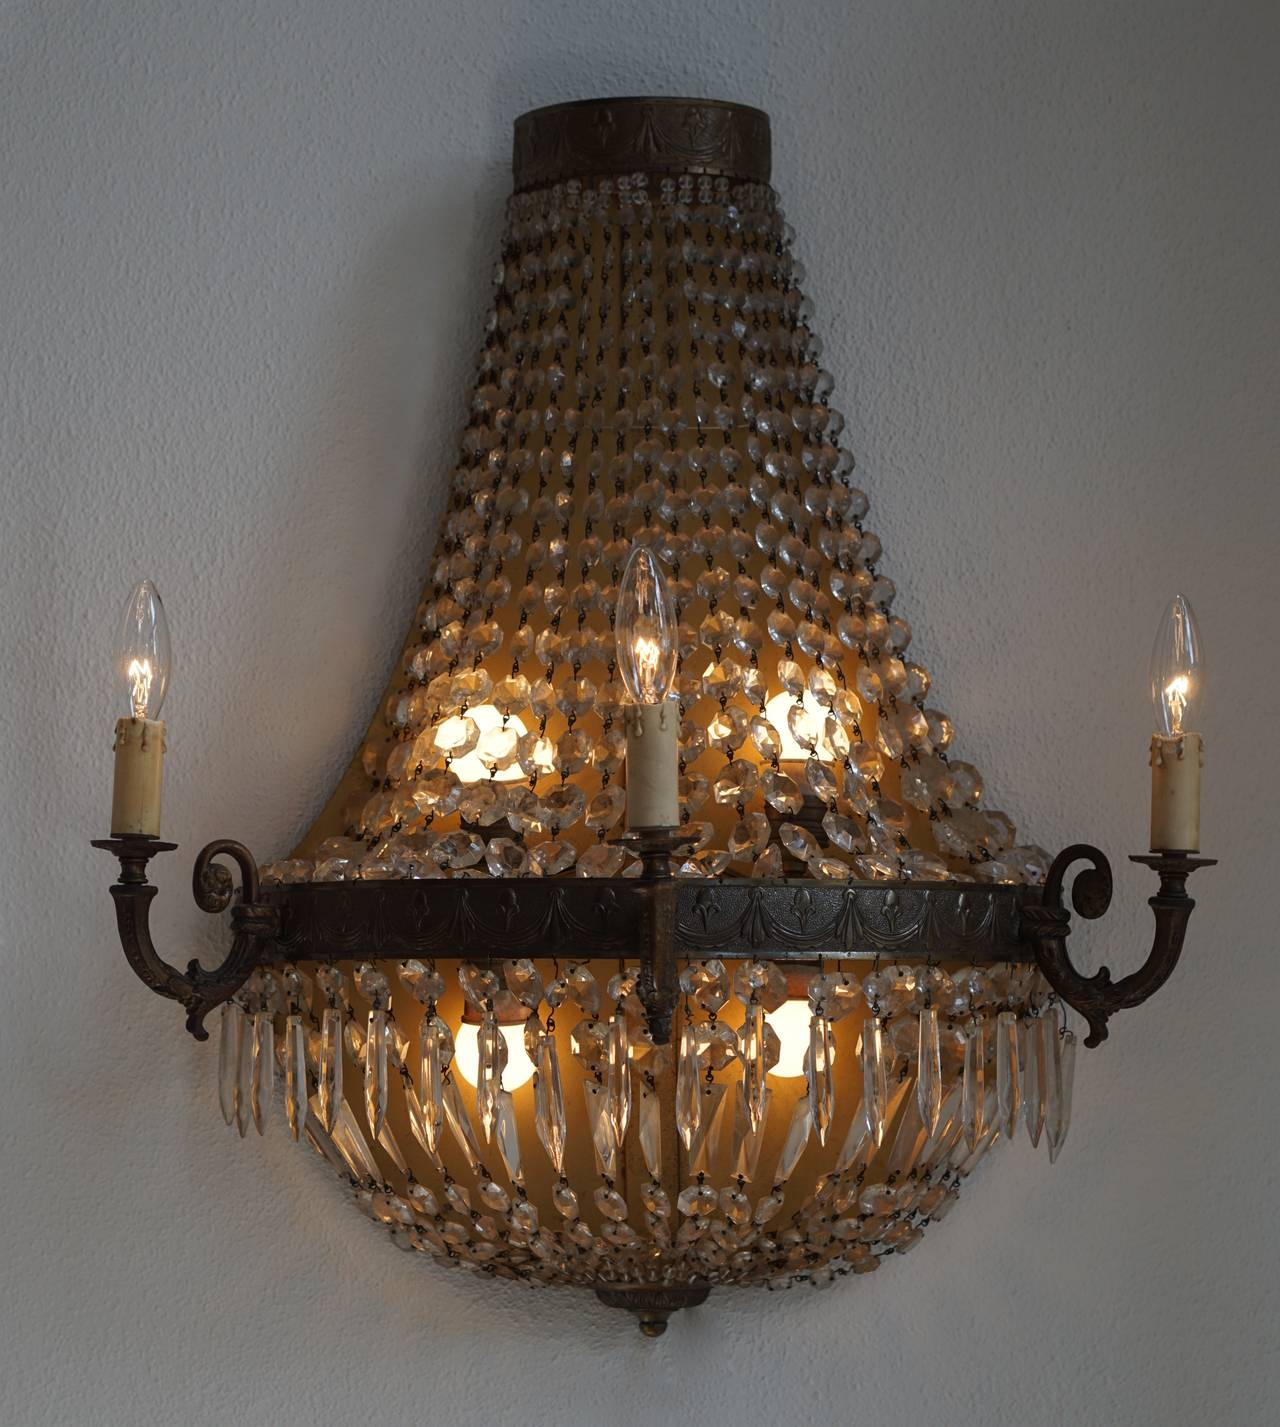 Set of Four Huge French Bronze and Crystal Wall Sconces, circa 1960 For Sale at 1stdibs